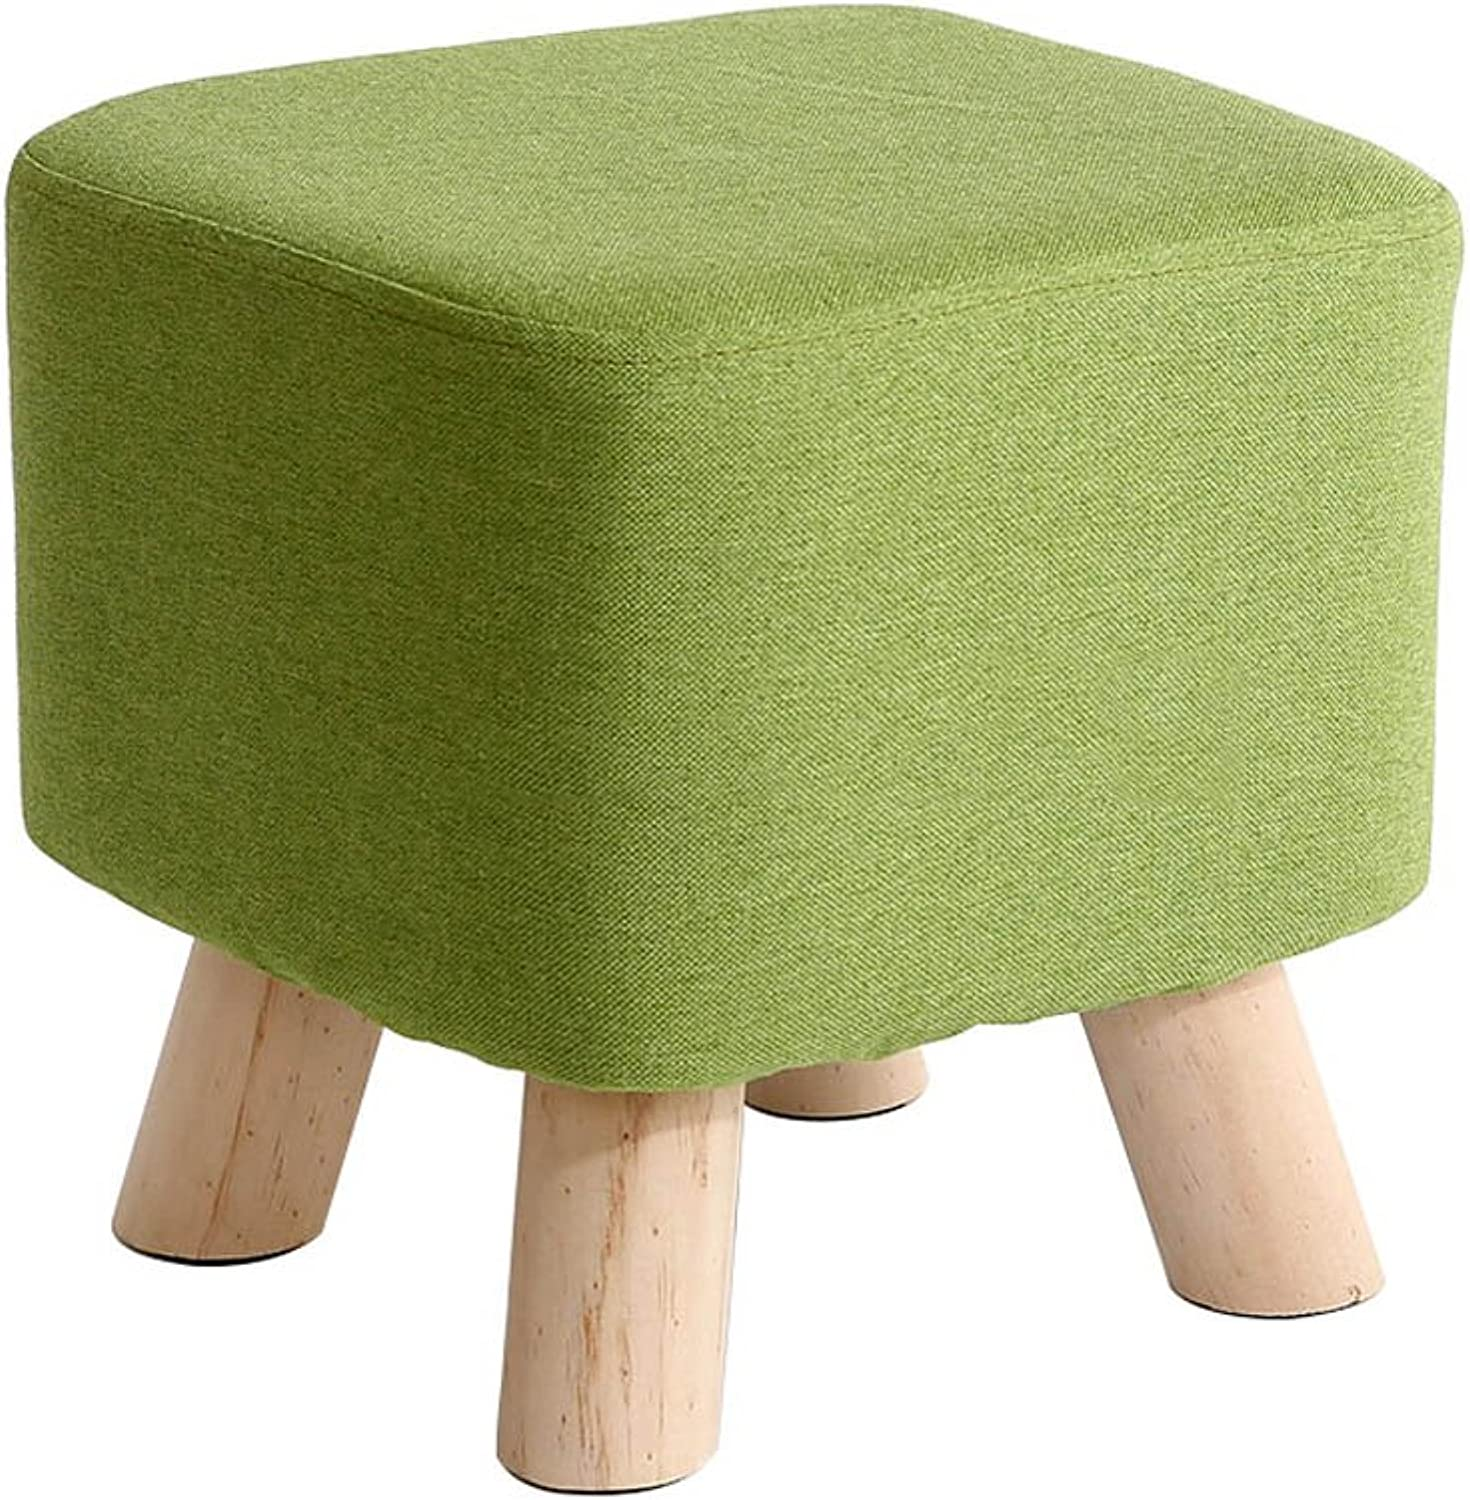 YANGXIAOYU Stool Leisure Chair Home Solid Wood Feet Fabric Sofa Stool Bench shoes (color   A)